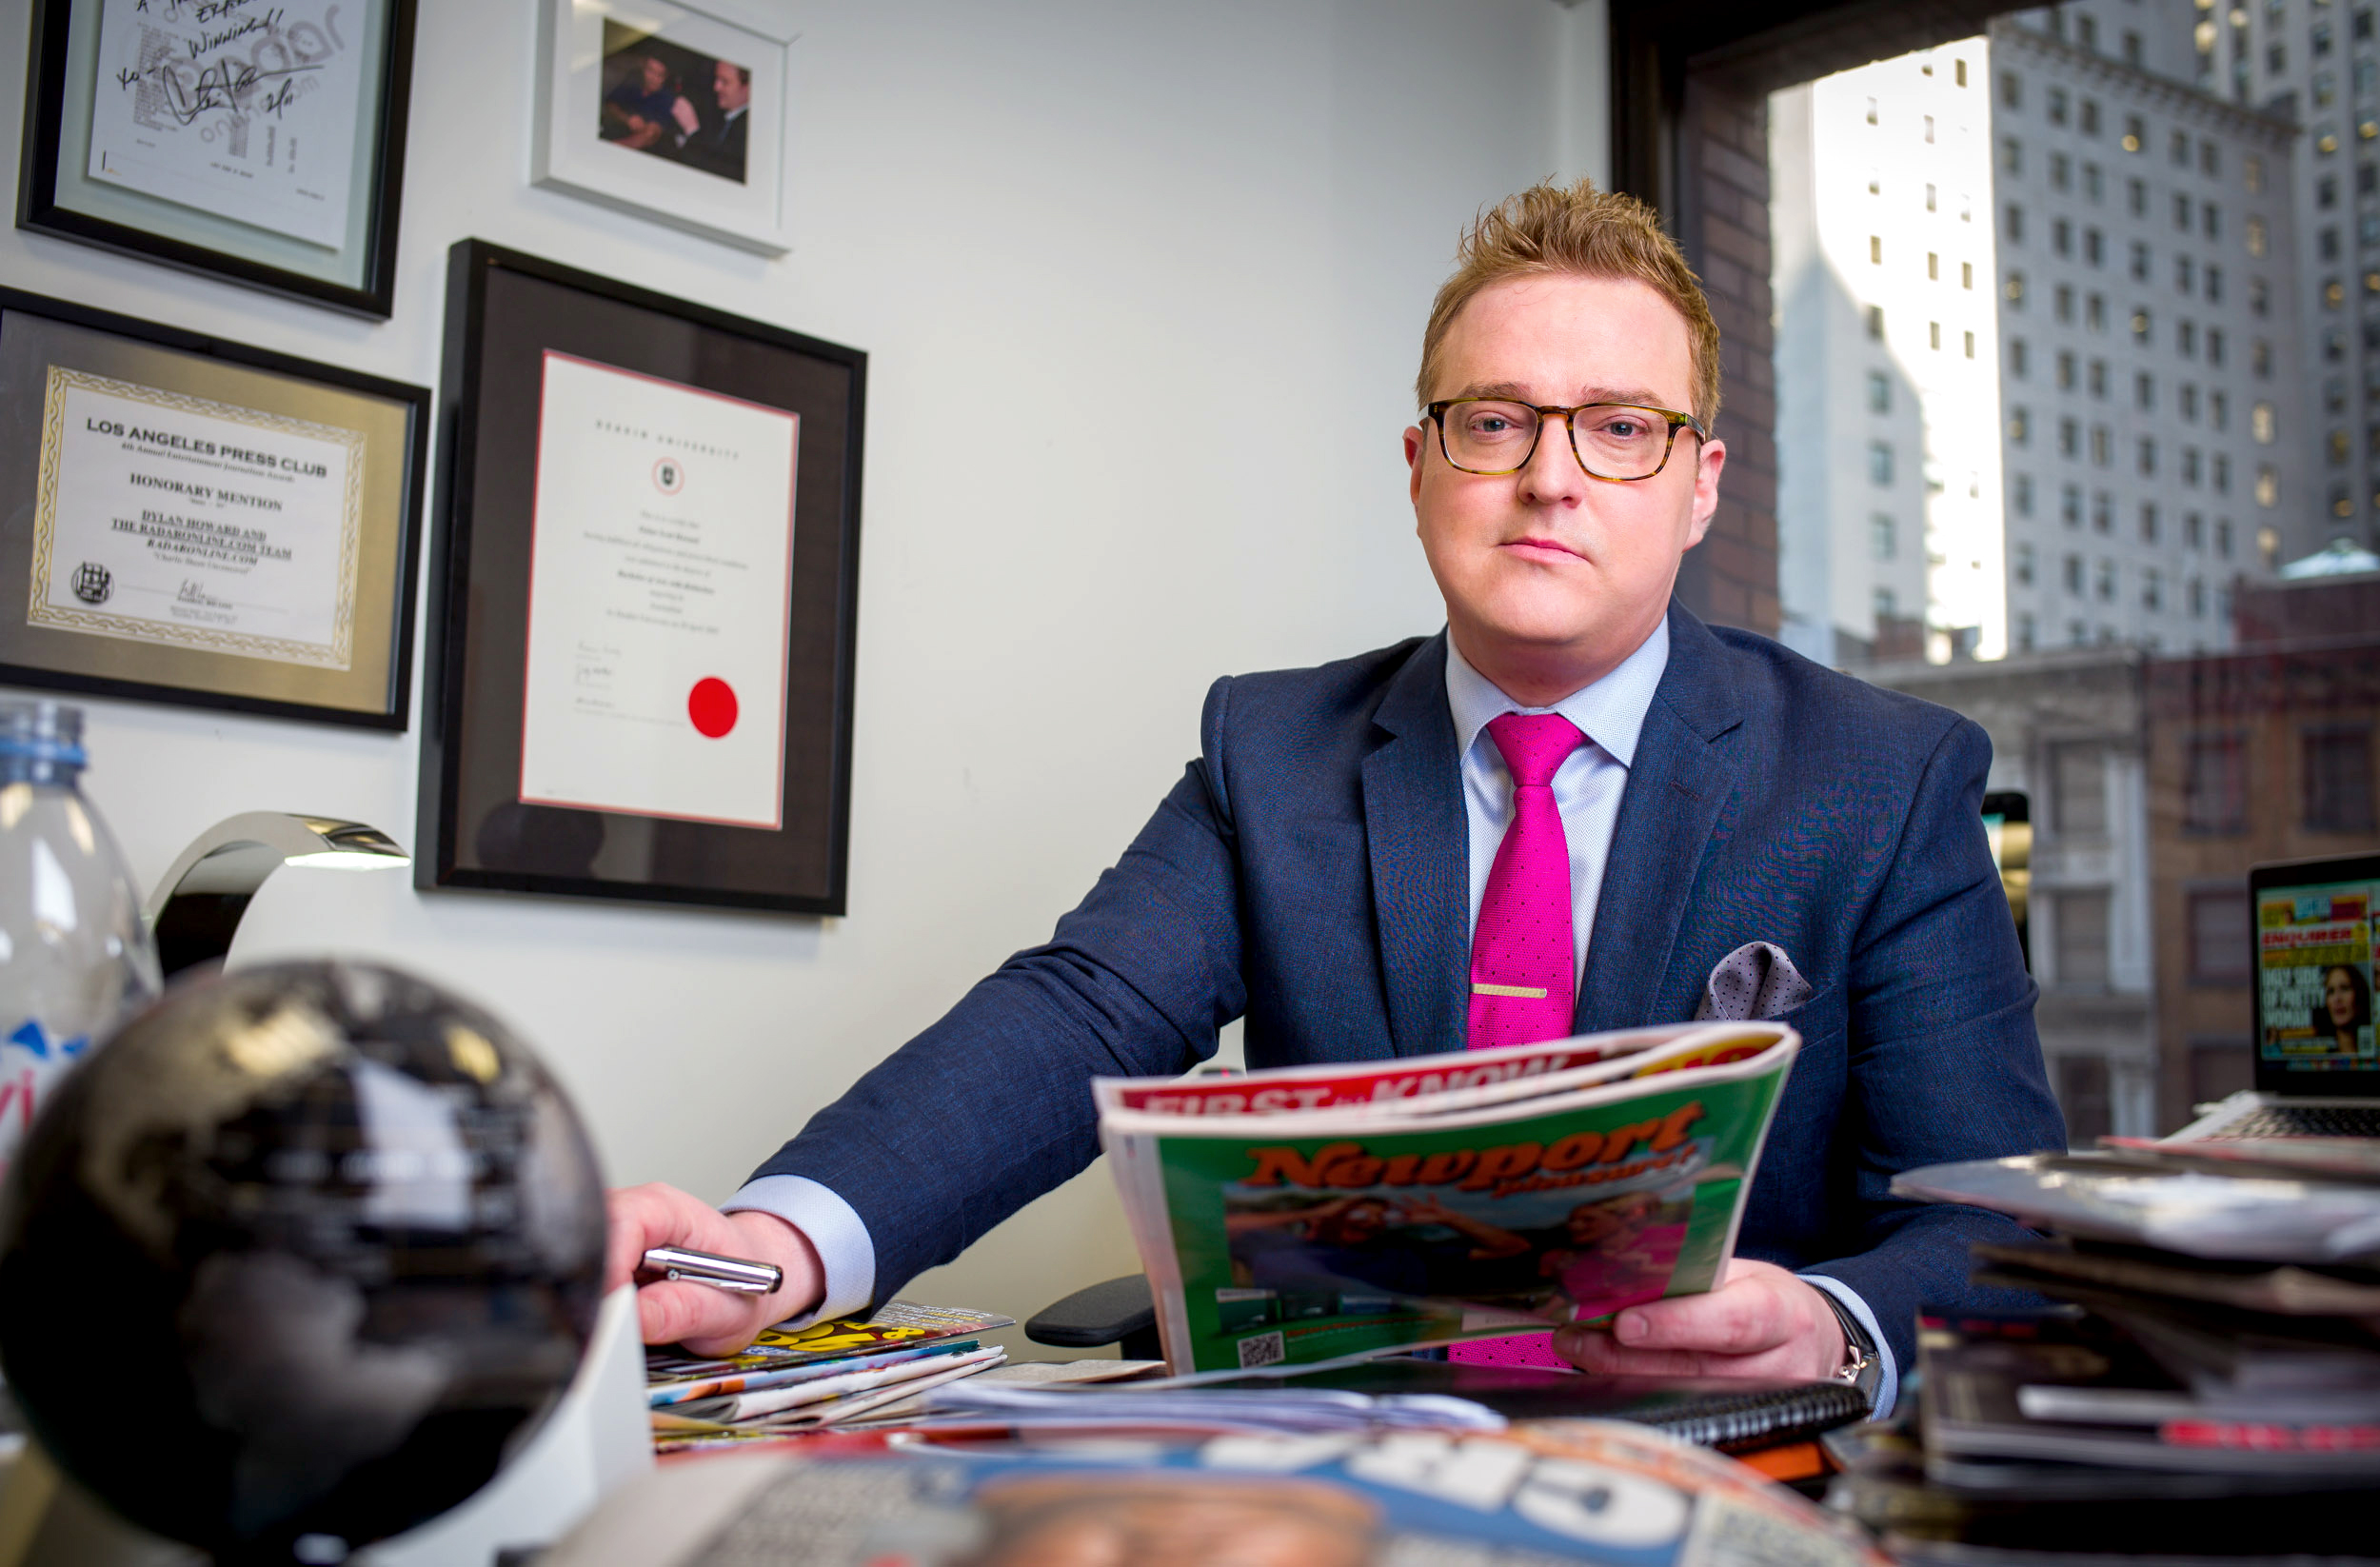 Dylan Howard, editor in chief and vice president of the National Enquirer